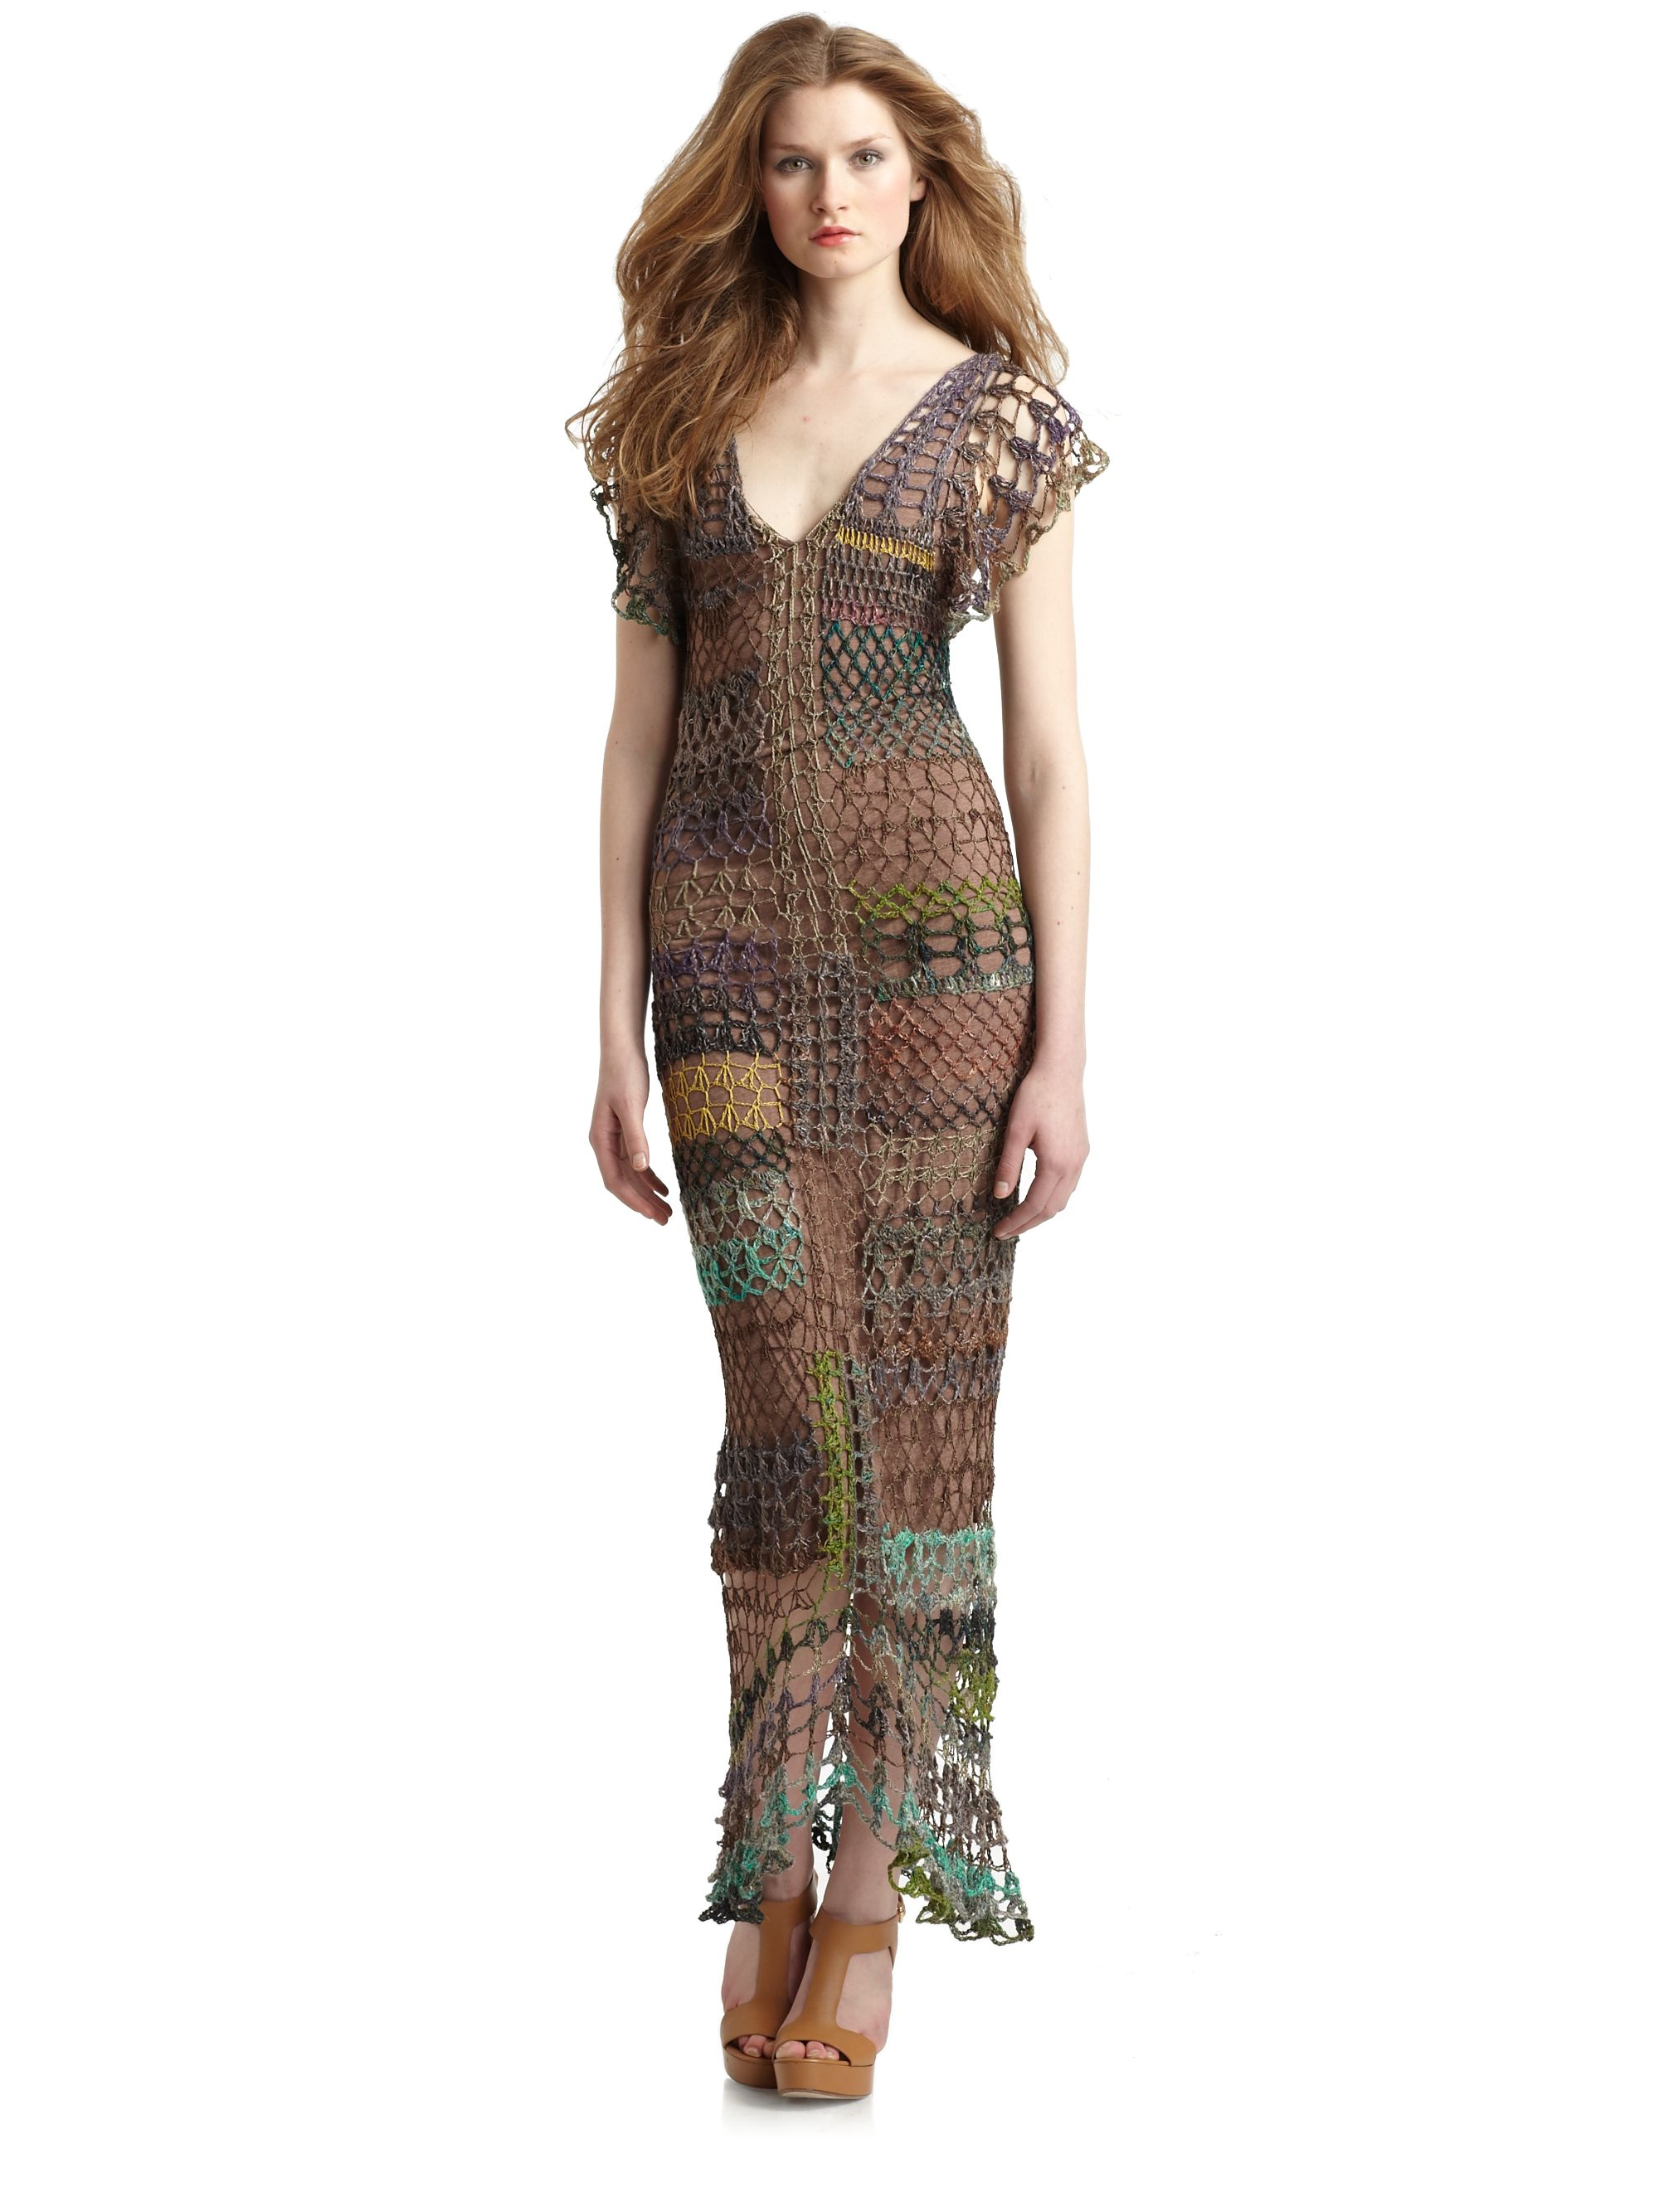 Free People Fools Gold Crochet Maxi Dress in Brown Lyst